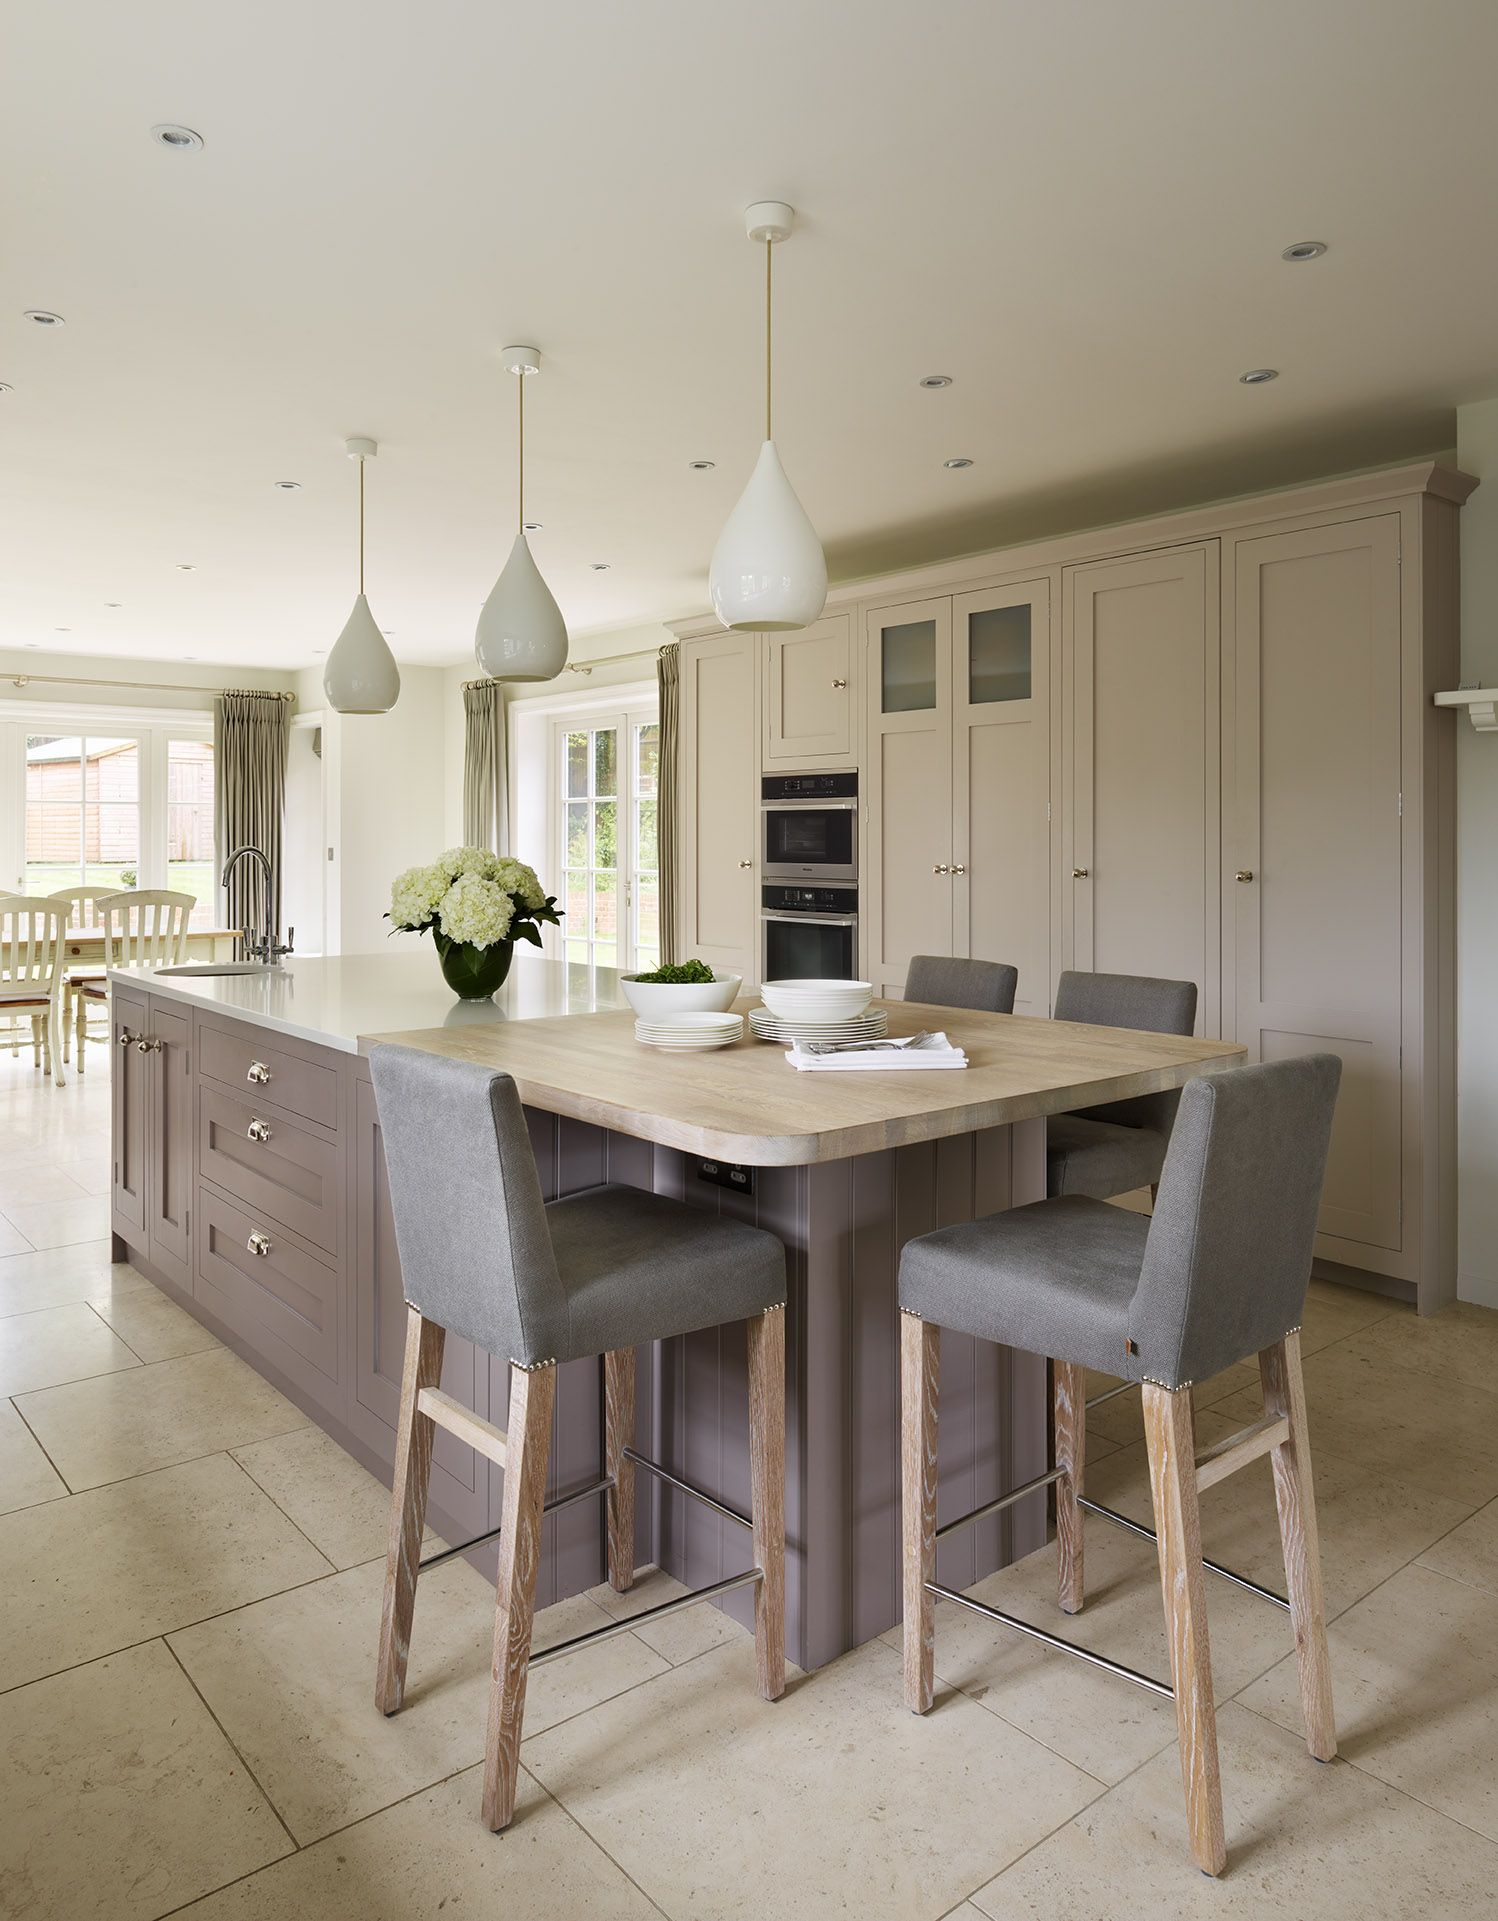 Shaker Kitchen Harvey Jones Painted In Farrow Ball 39 Elephants Breath 39 39 Charleston Grey 39 And